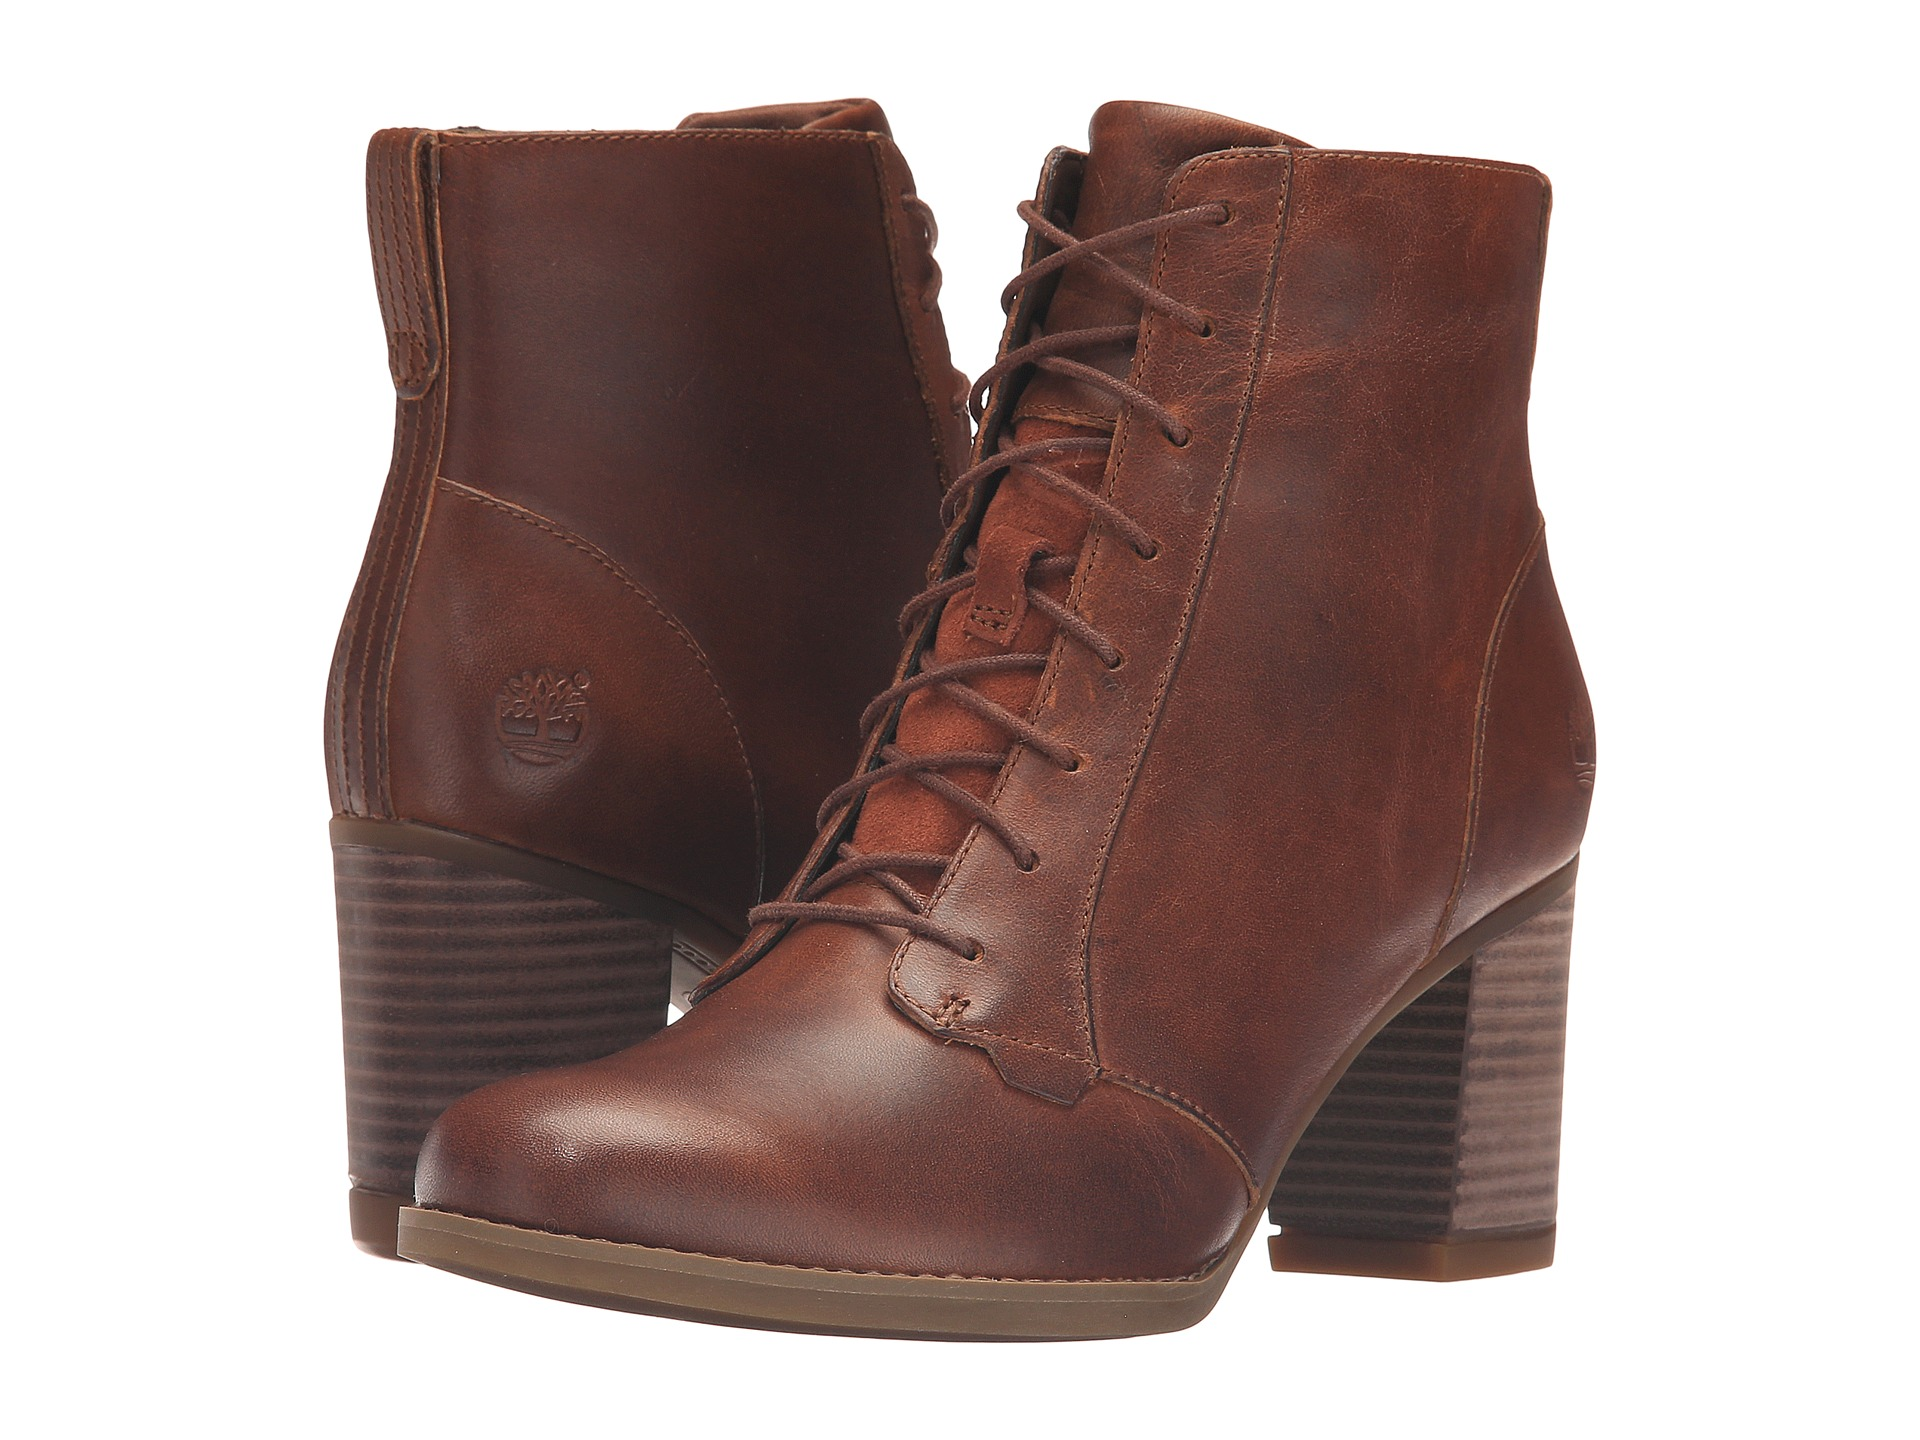 timberland glancy chukka boots for women